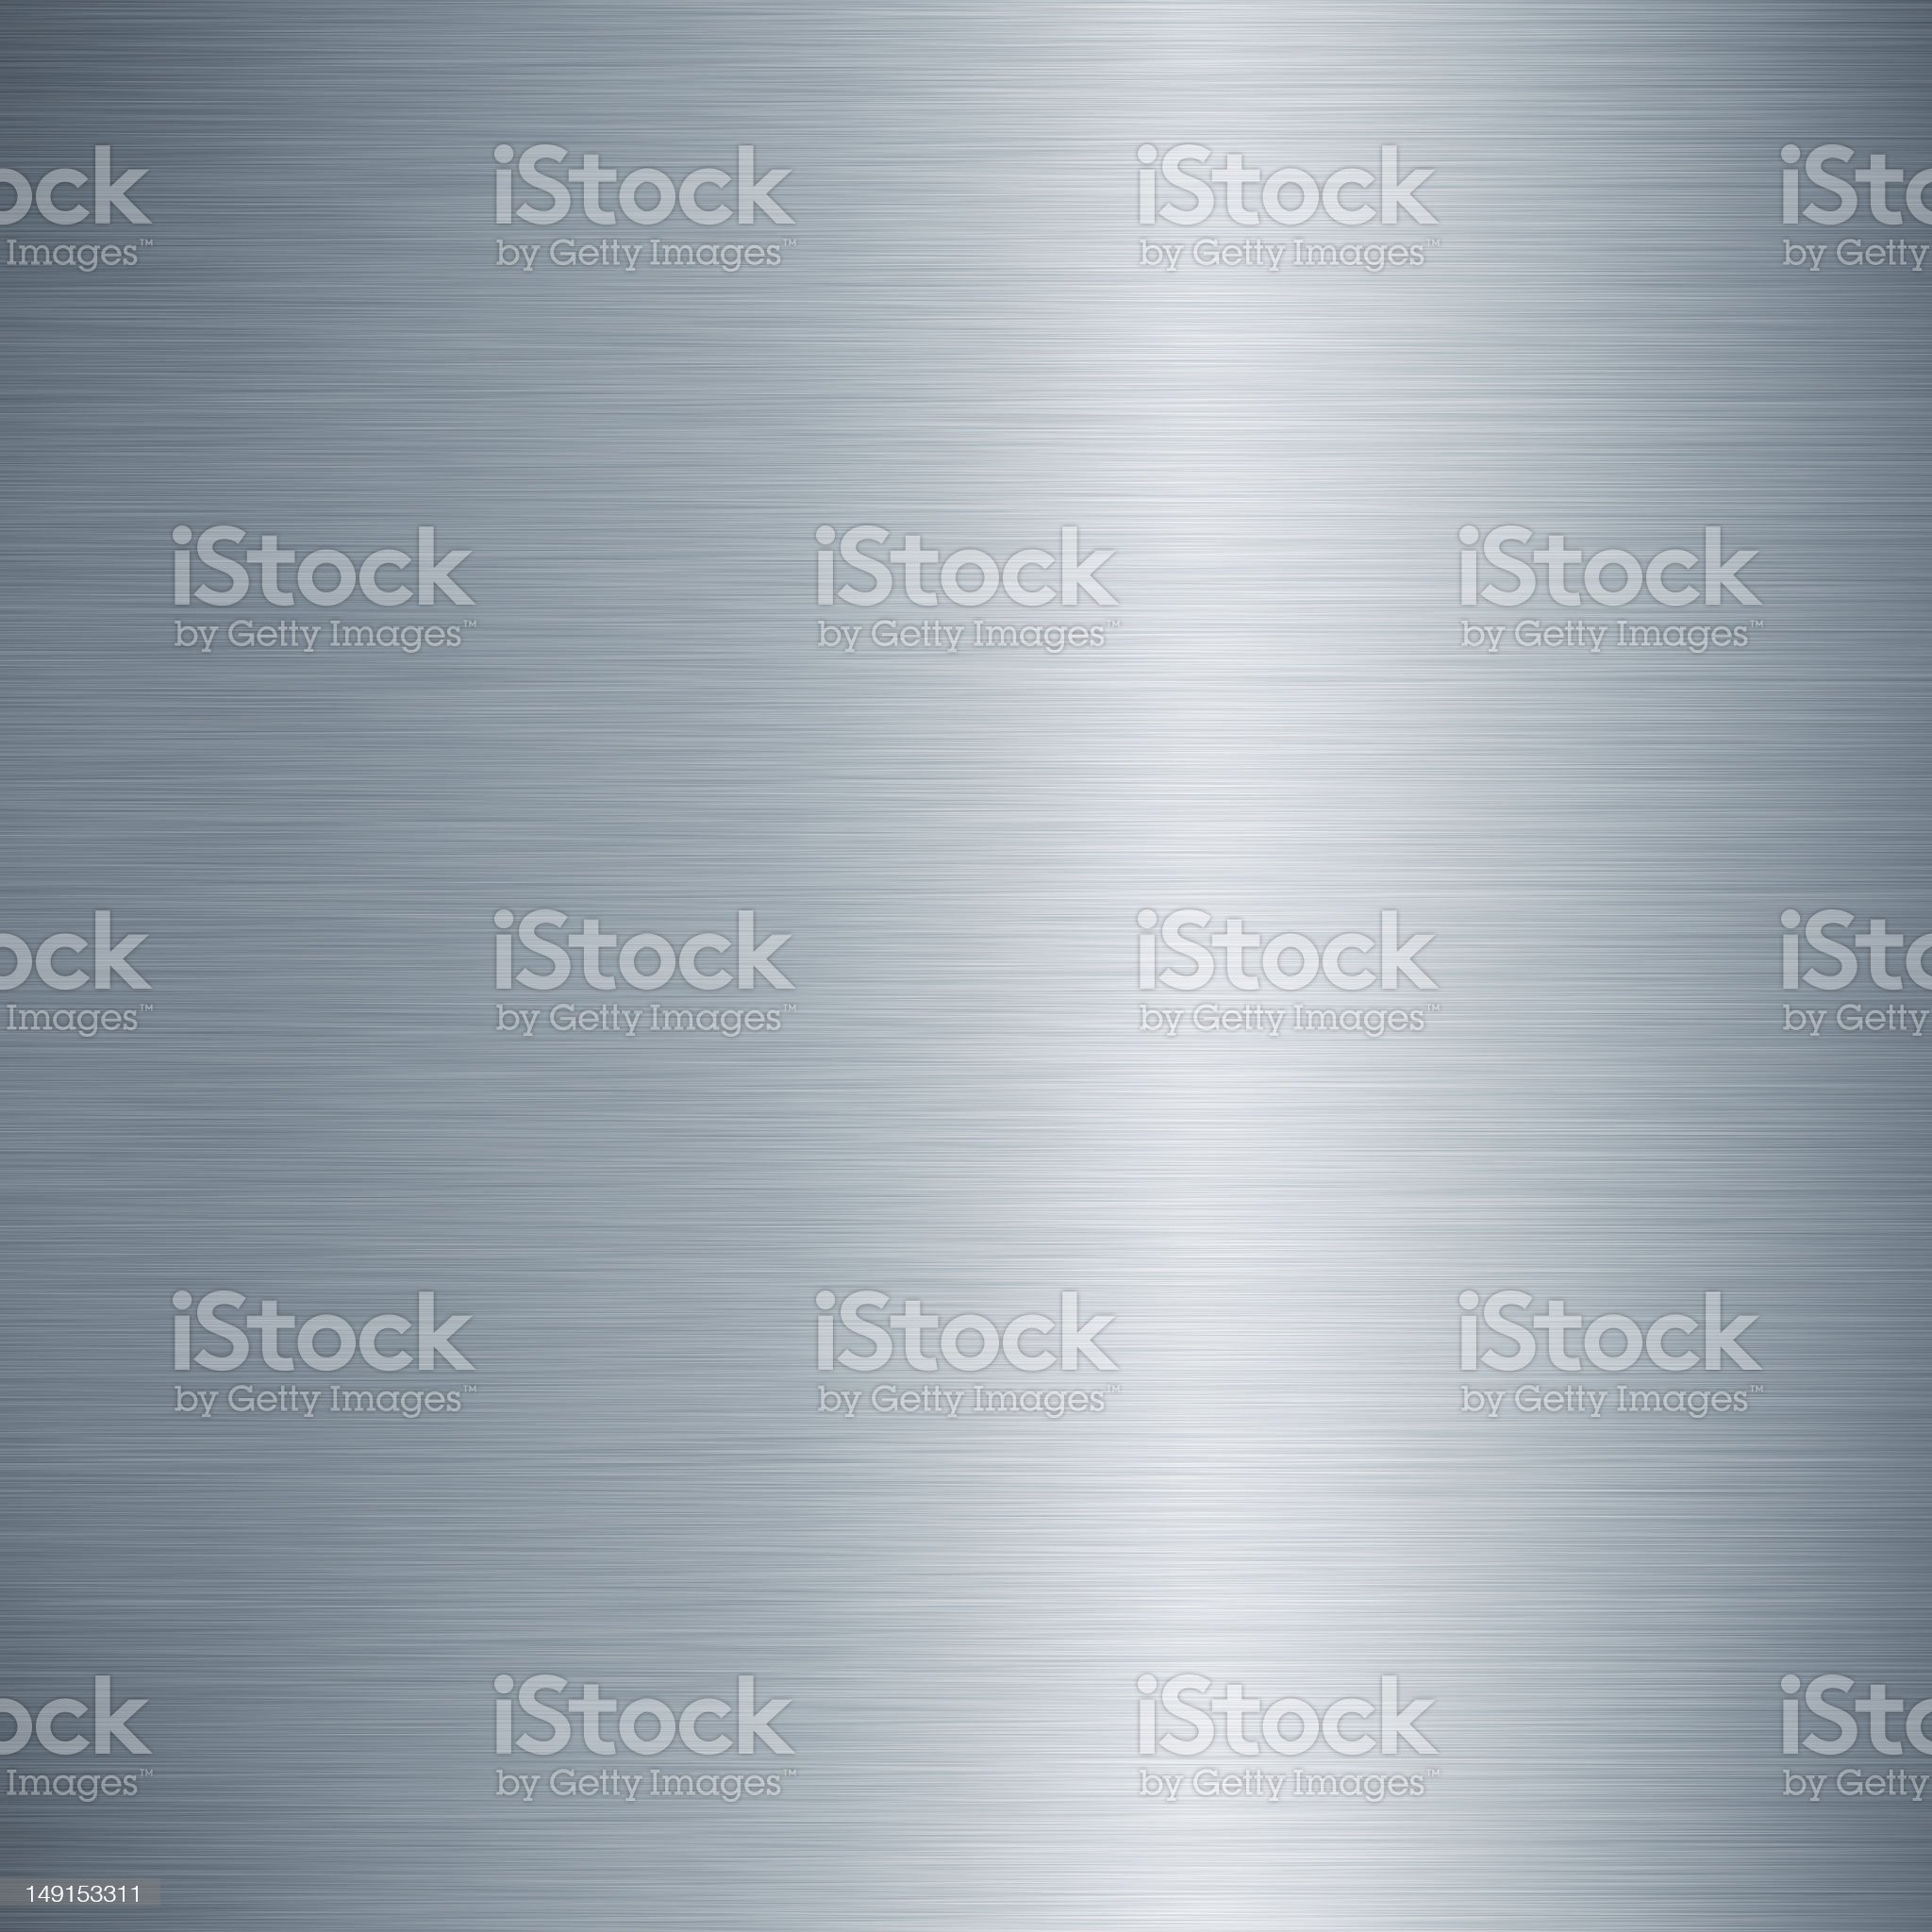 A photo of a metal texture that cold be used as a background royalty-free stock photo